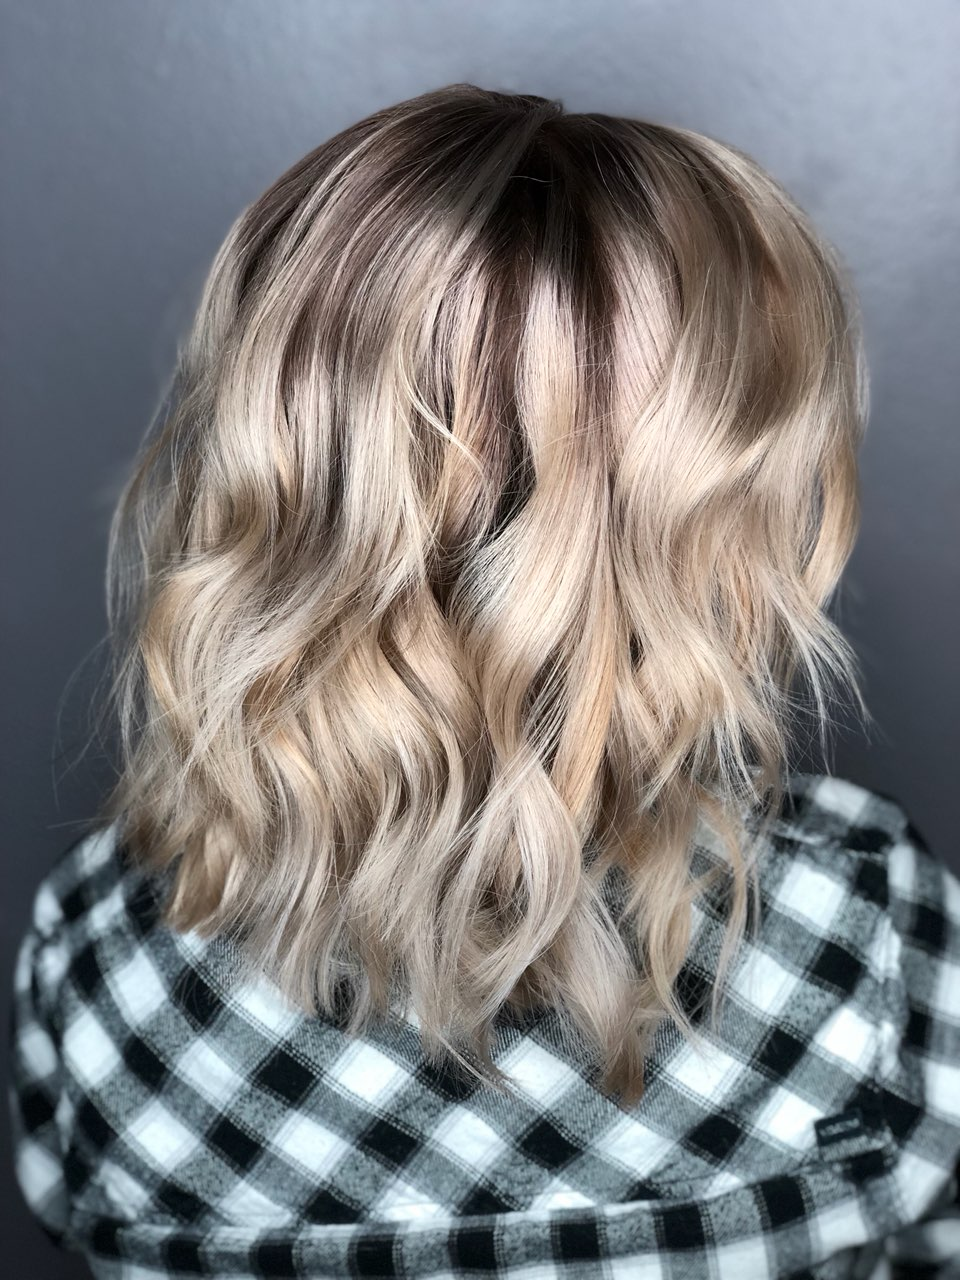 Dimensional Blonde & Haircut